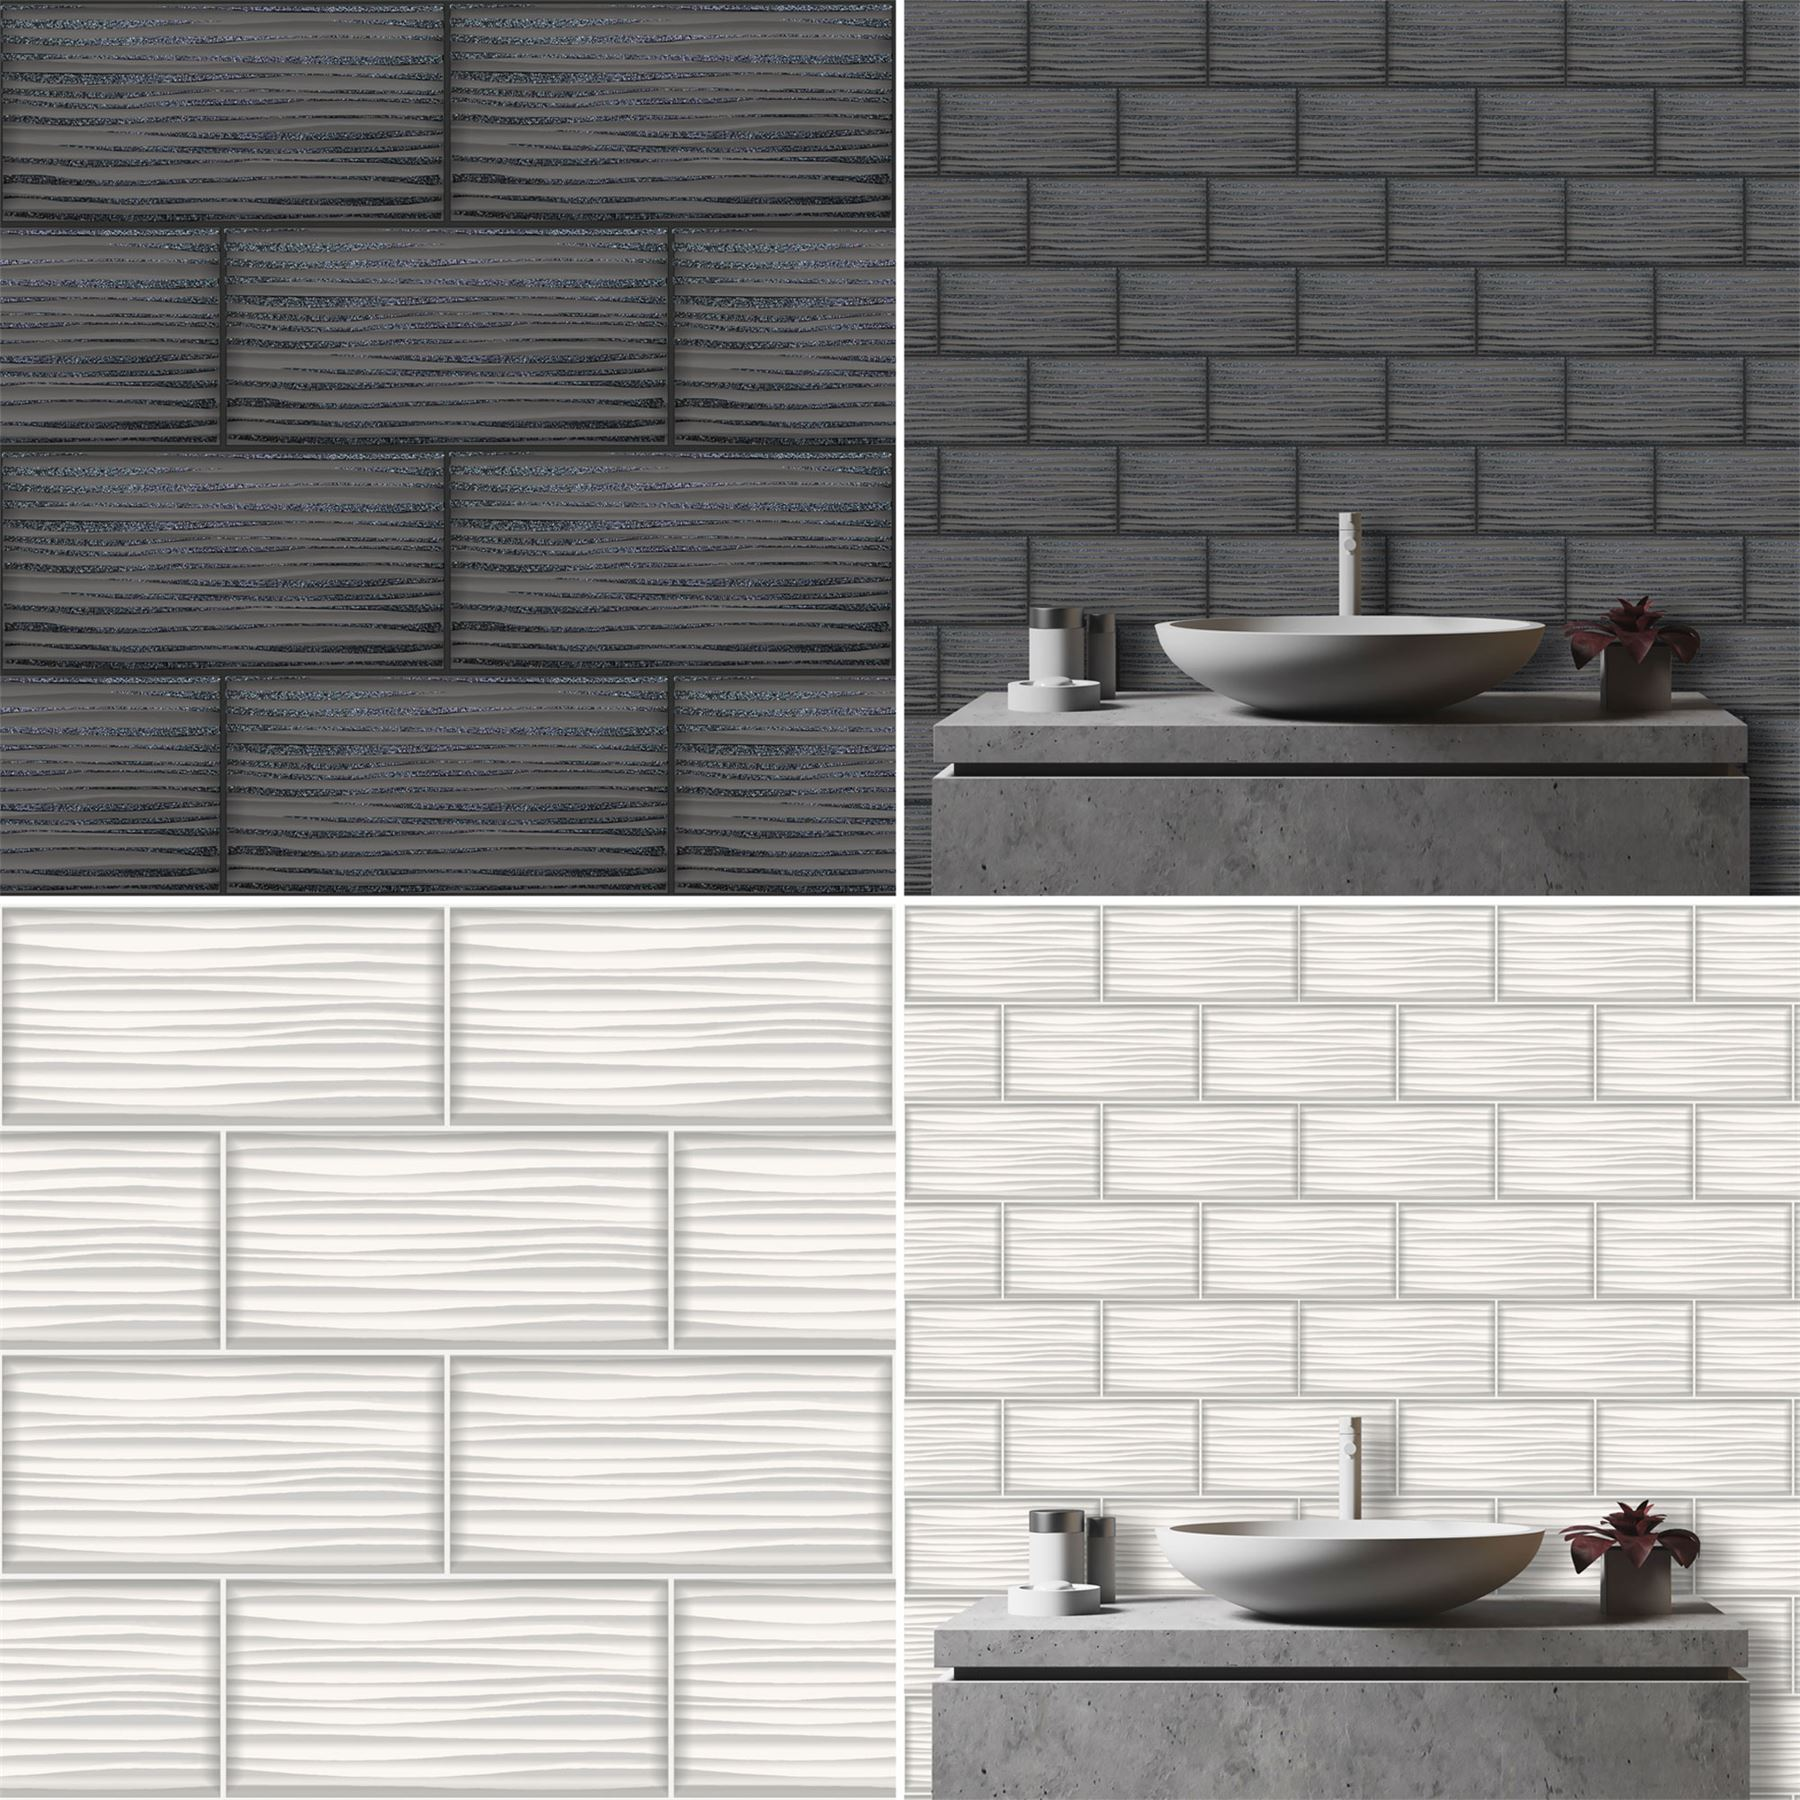 Wave Tile Wallpaper Tile Brick Glitter Kitchen Bathroom Embossed Vinyl Holden Ebay